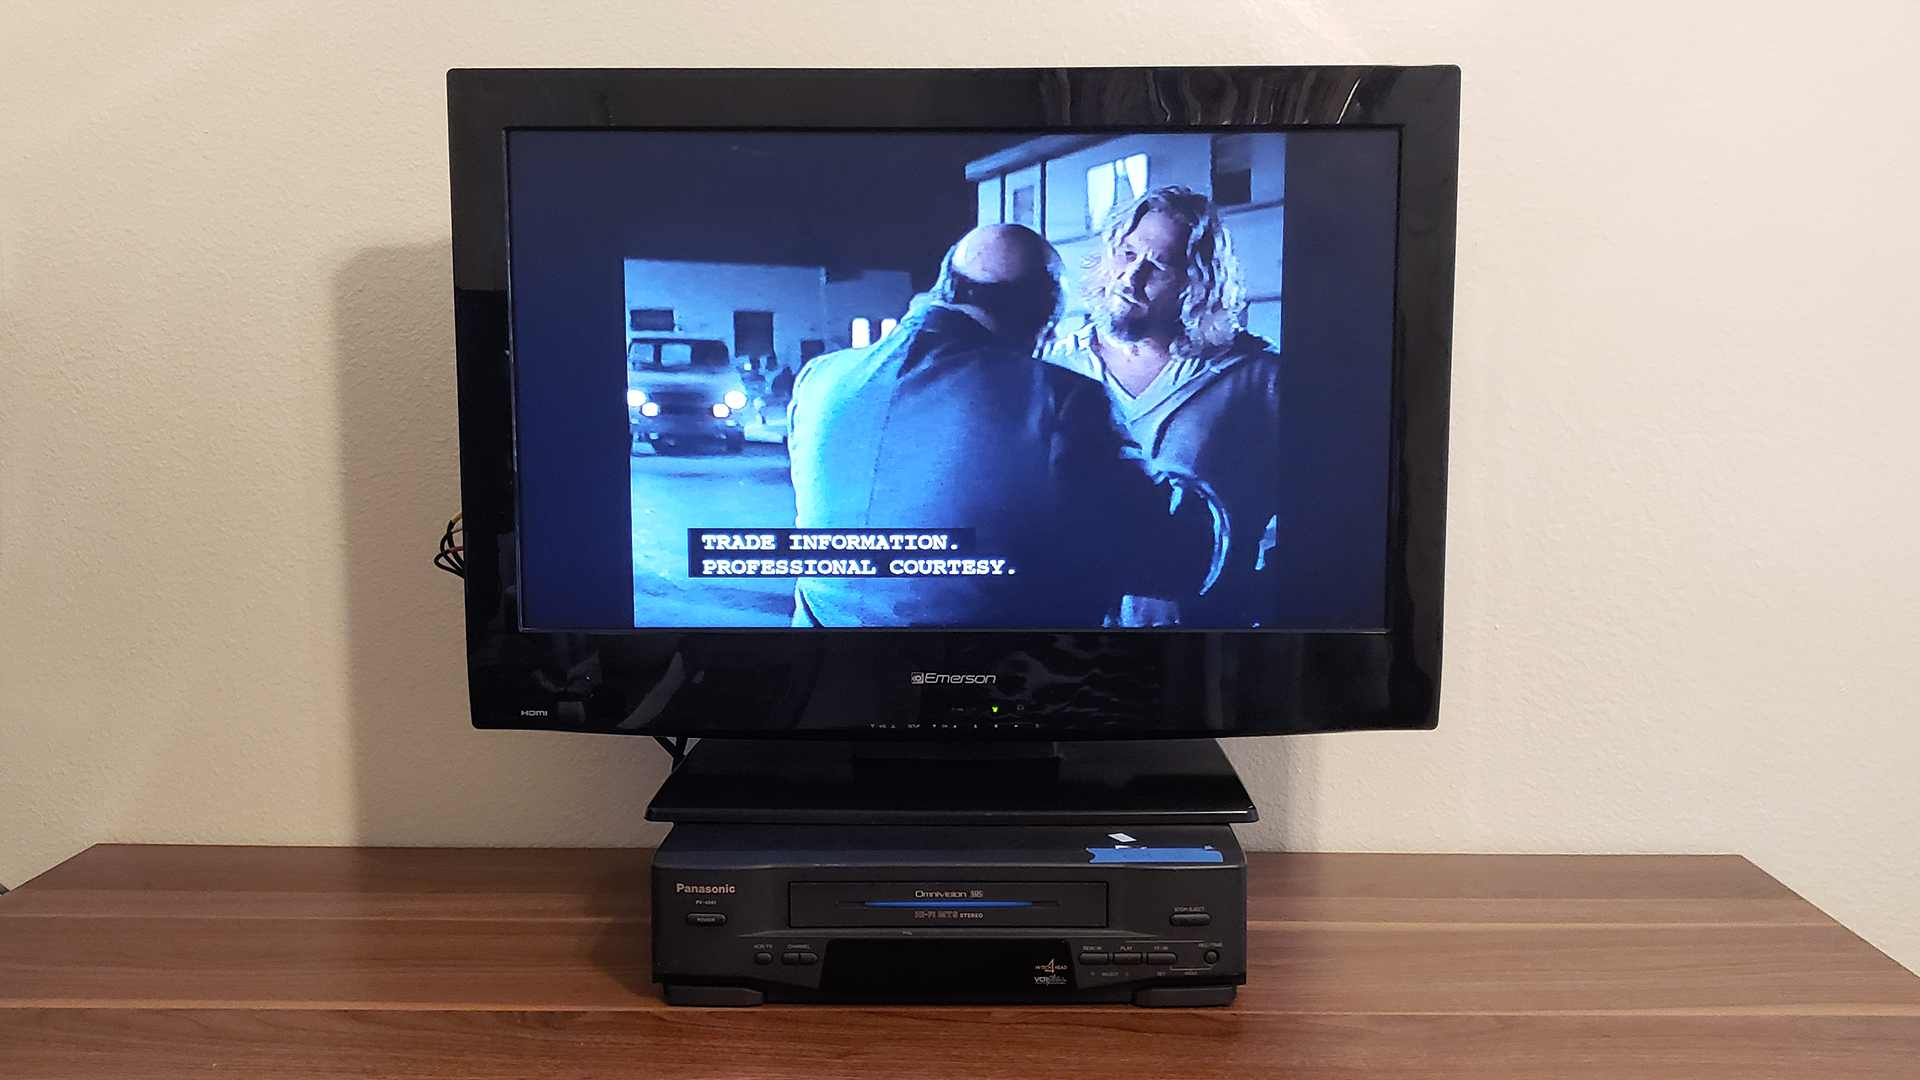 A picture of an HD TV playing a The Big Lebowski VHS tape.